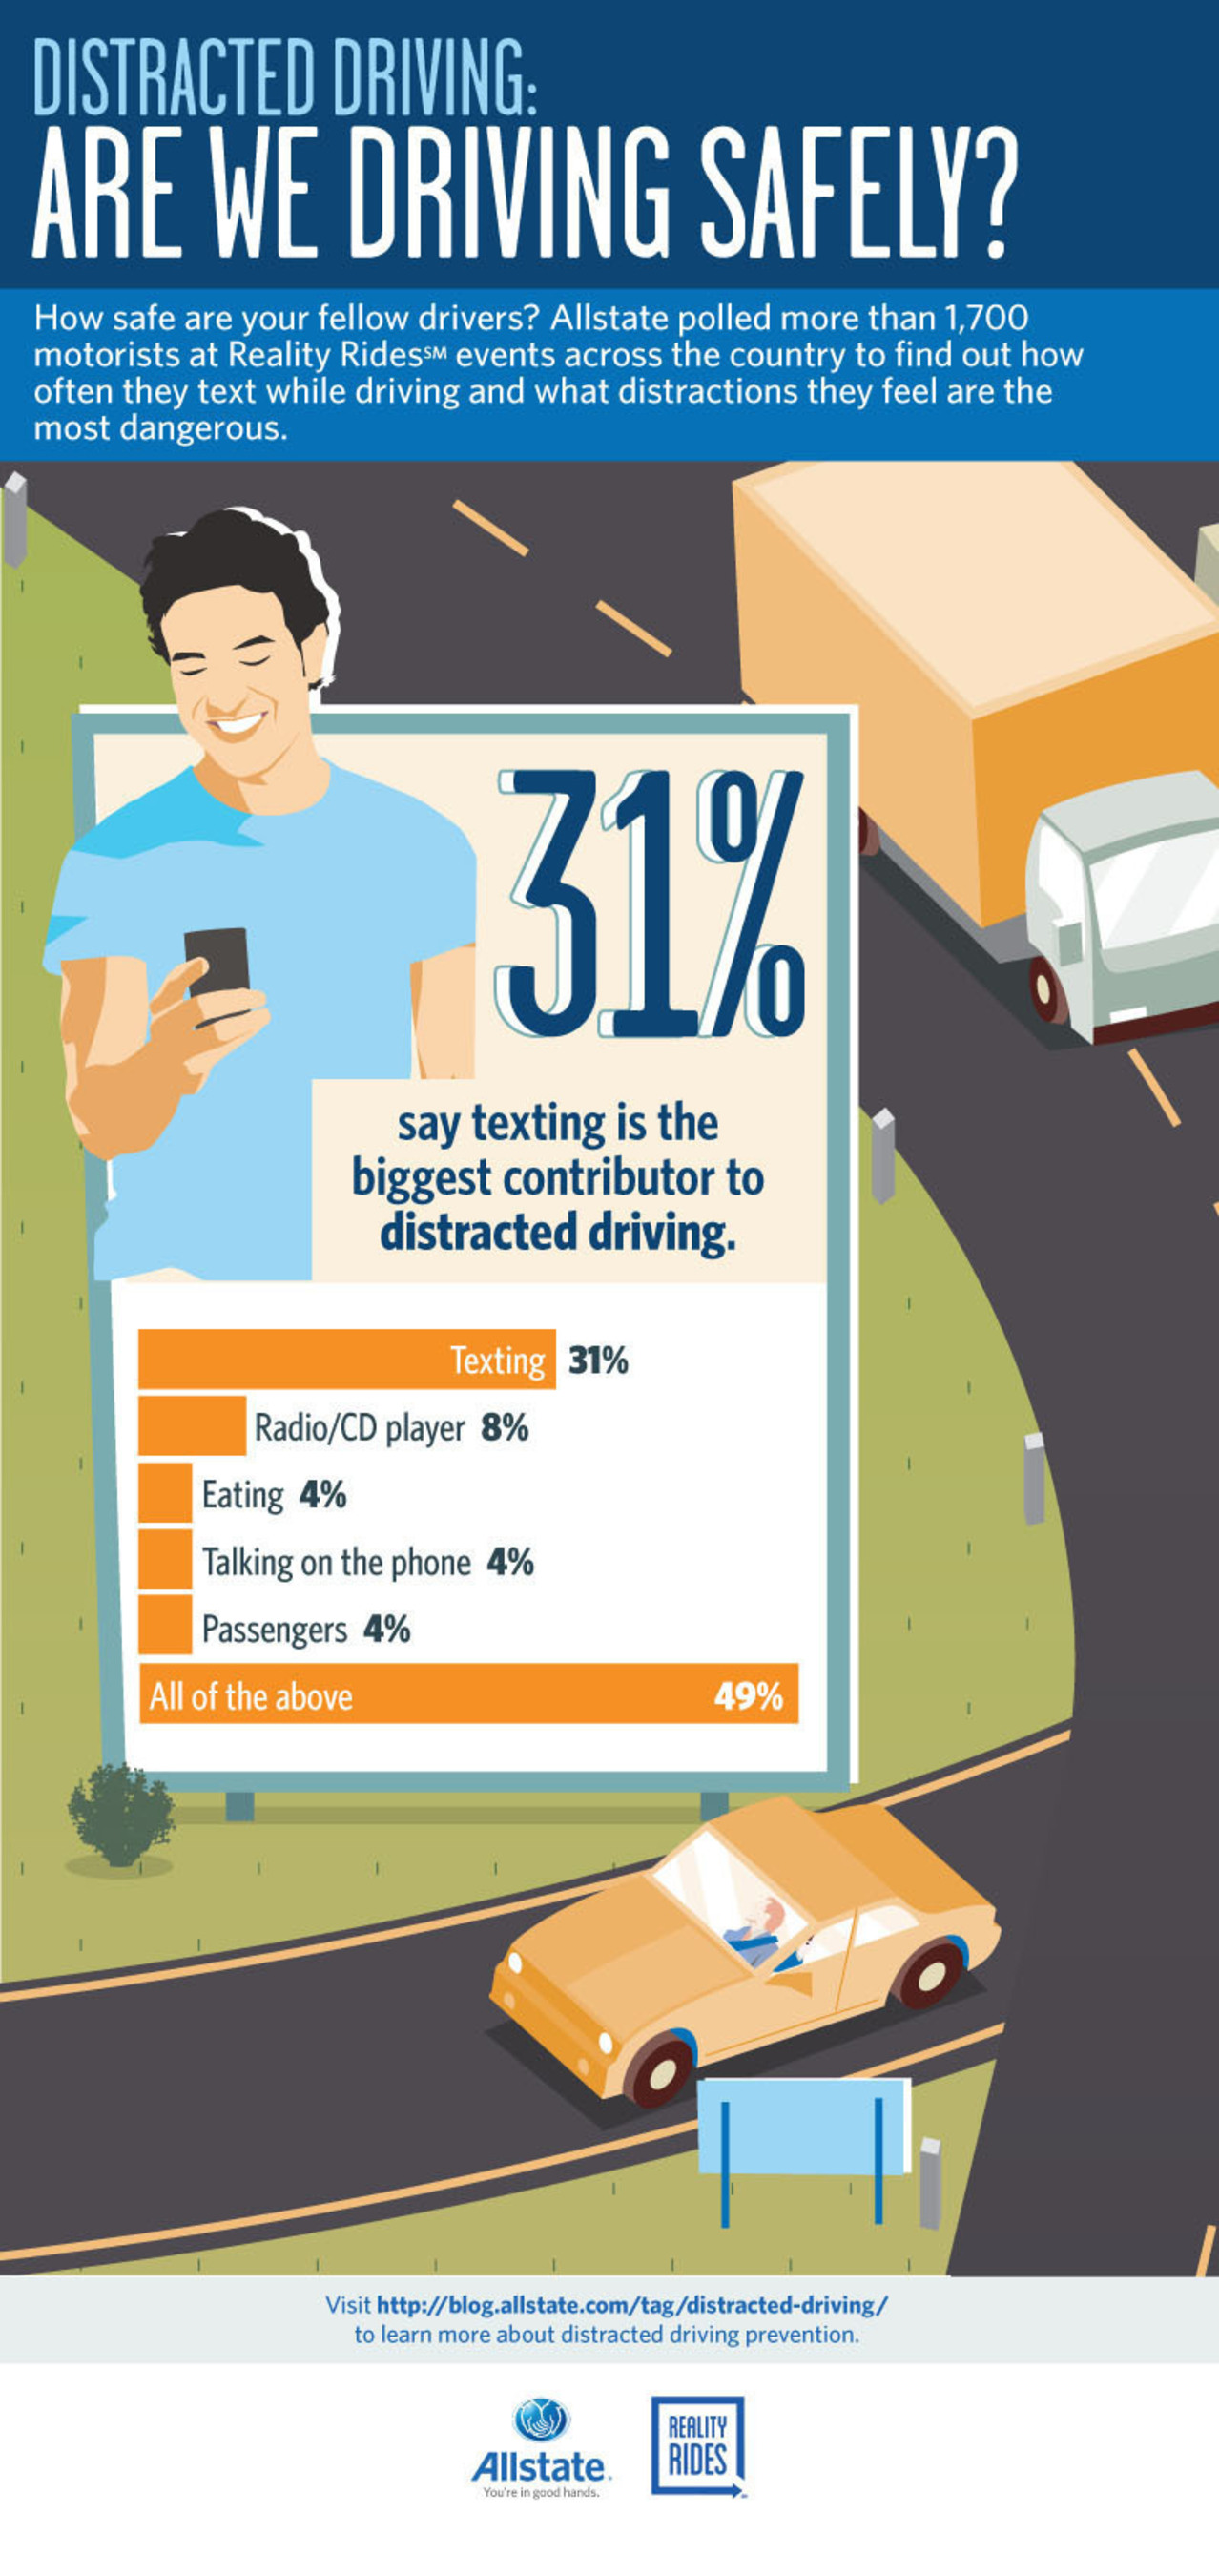 Allstate Reality Rides polled drivers to find out which distractions they feel are the most dangerous. ...